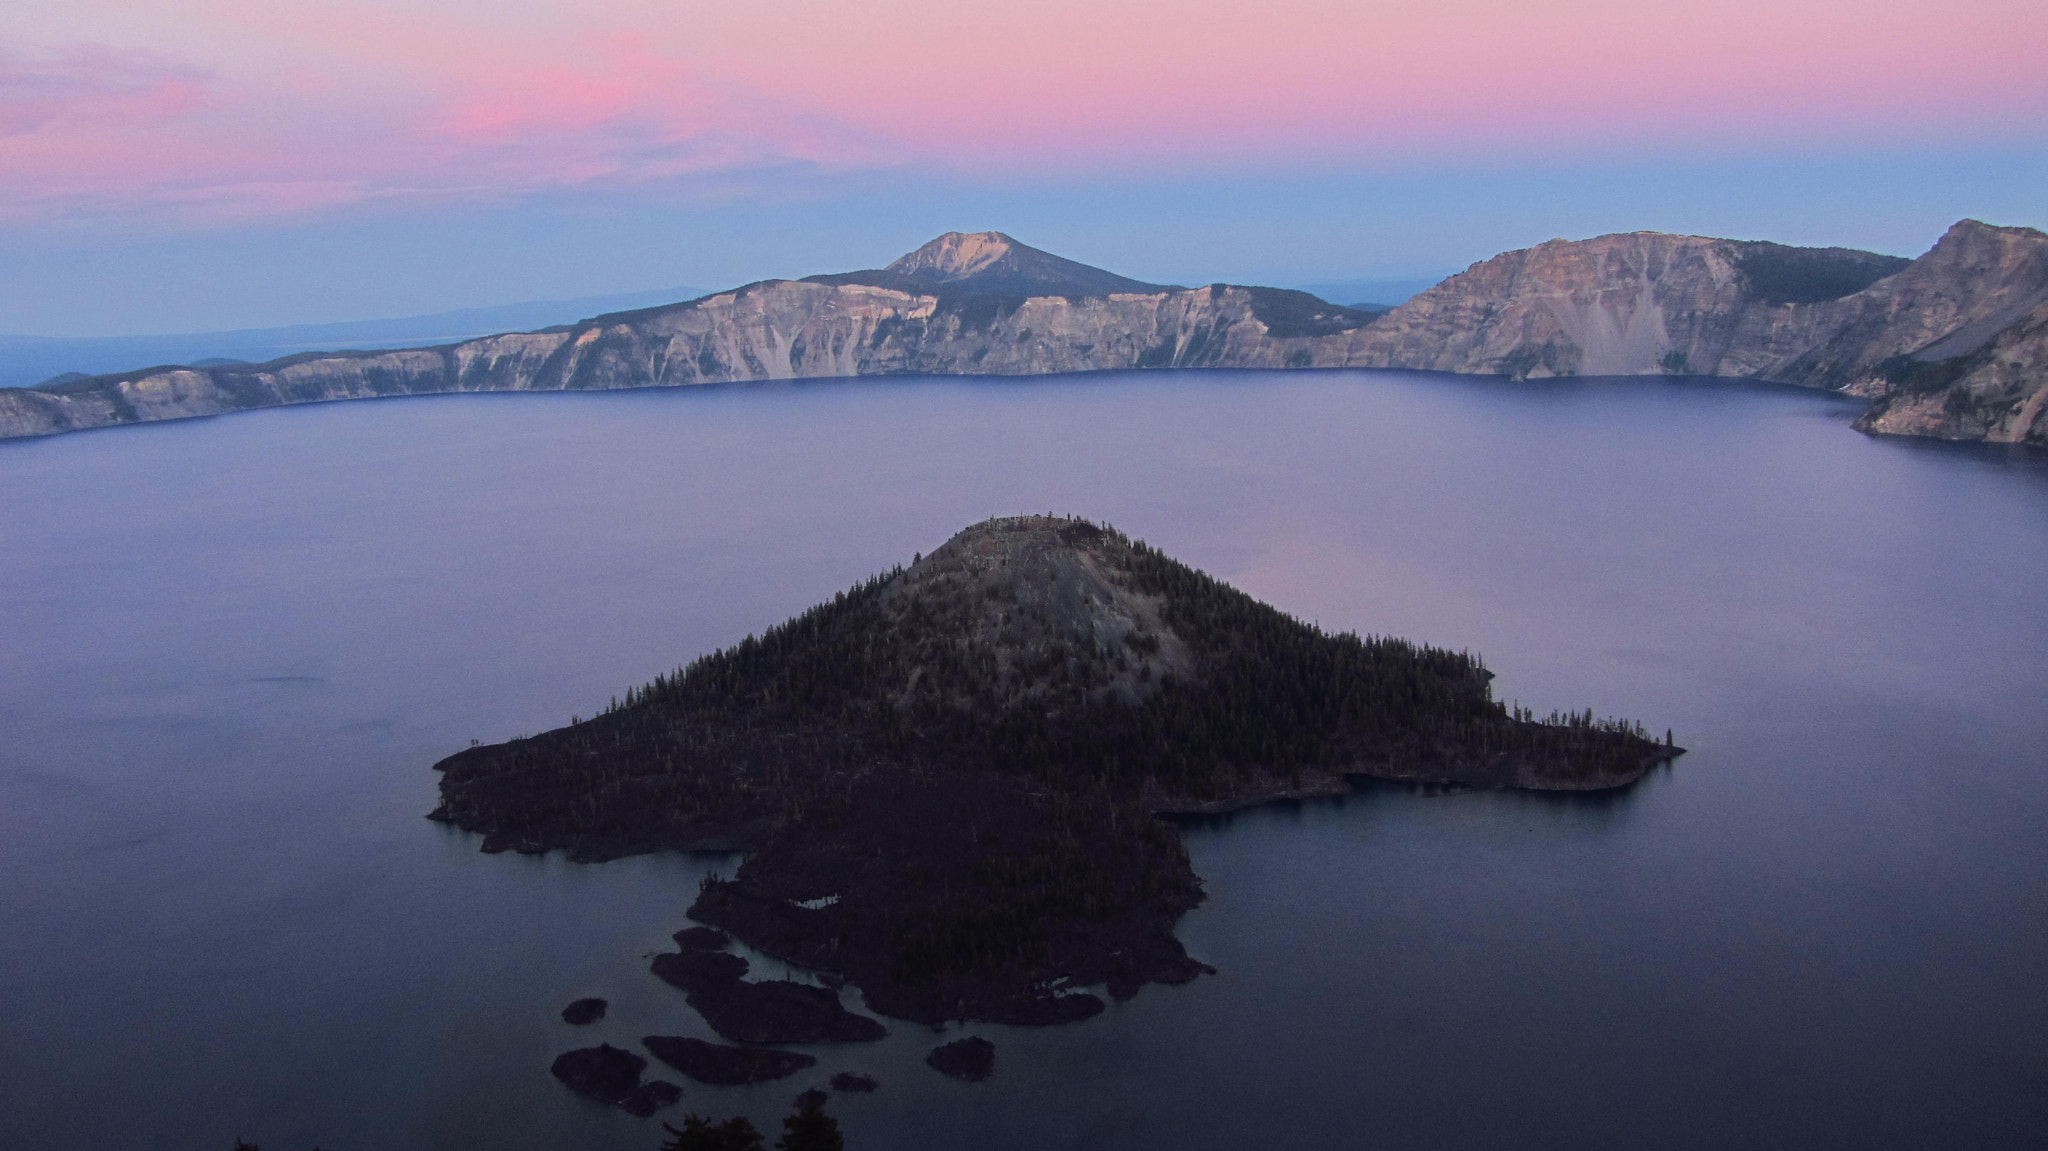 Photograph Dusk @ Crater Lake, Oregon by Bharath Booshan on 500px